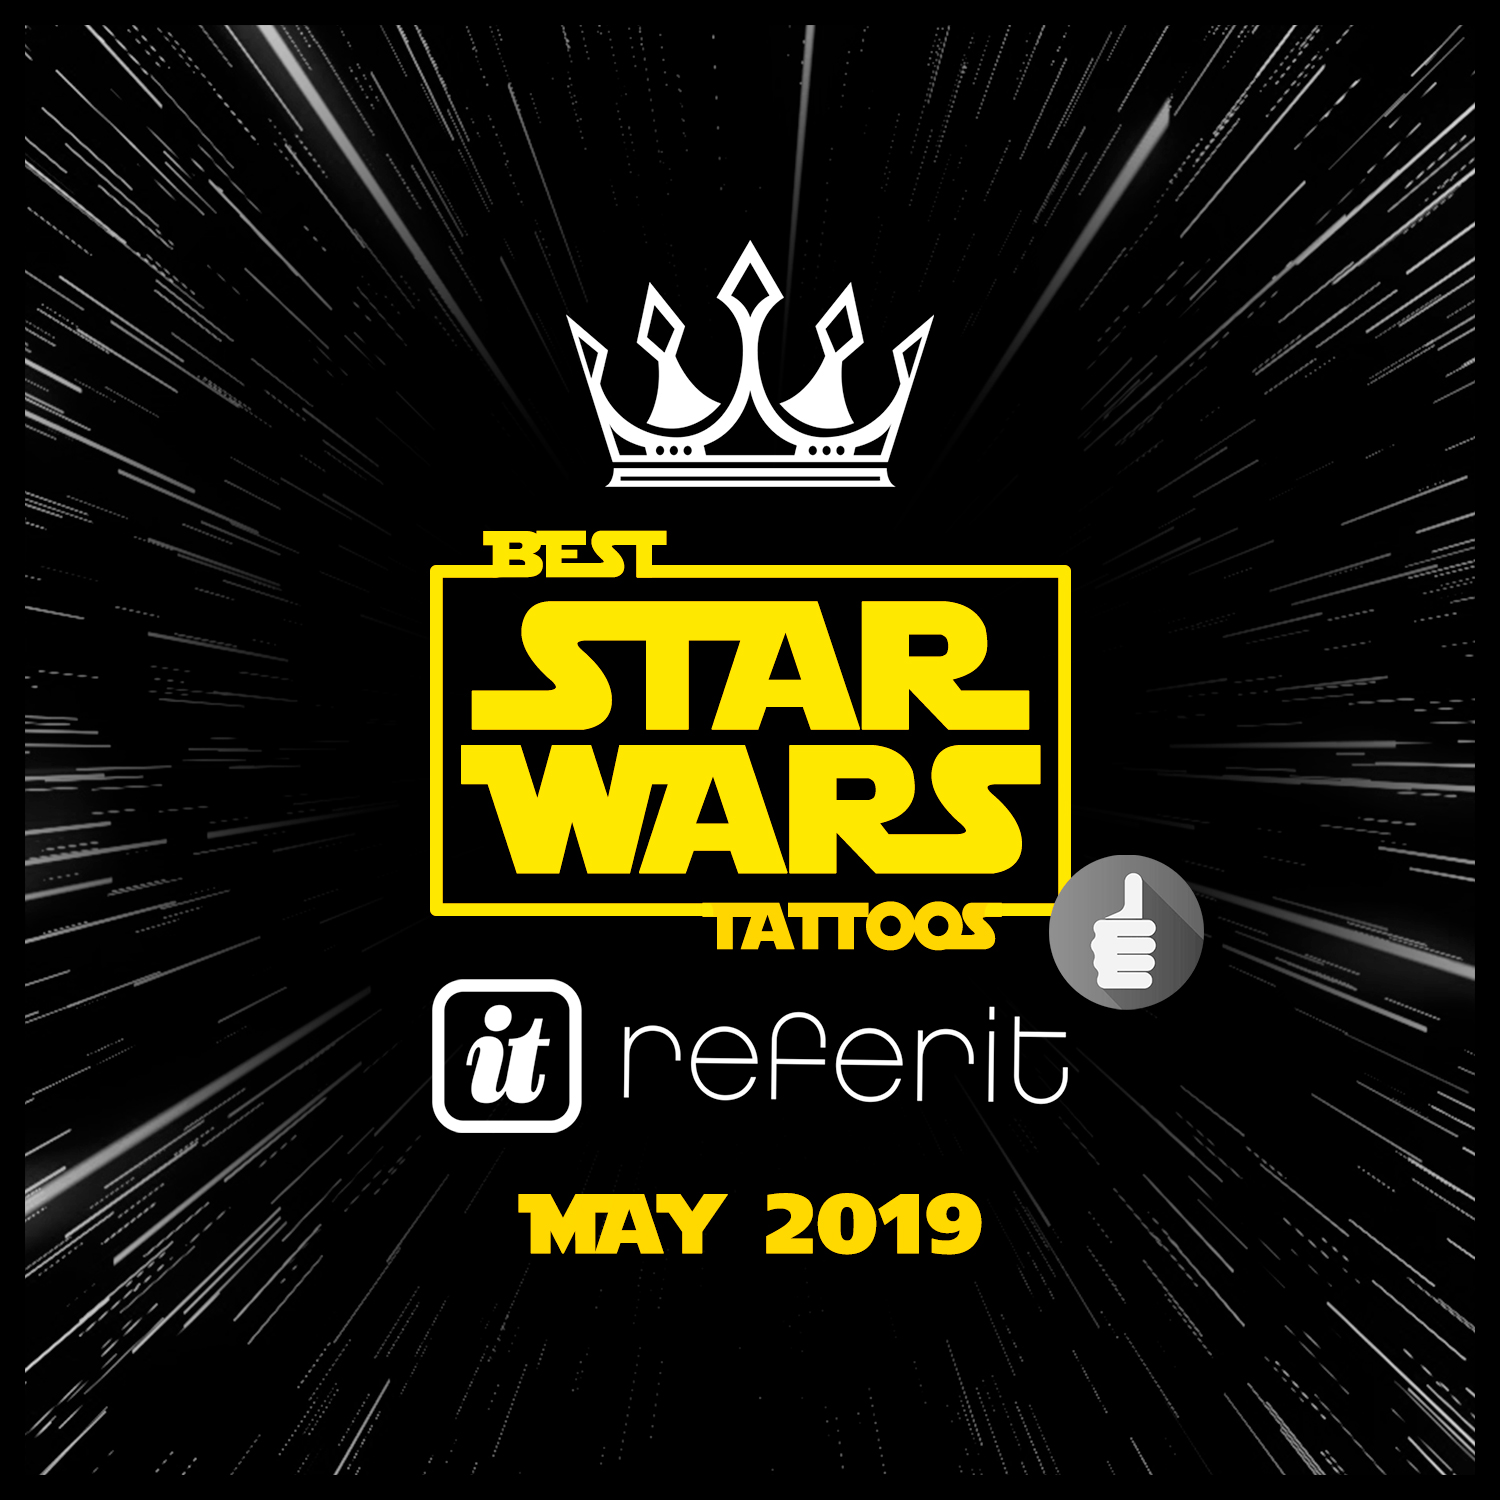 Best Star Wars Day Tattoos May 2019 | ReferIt